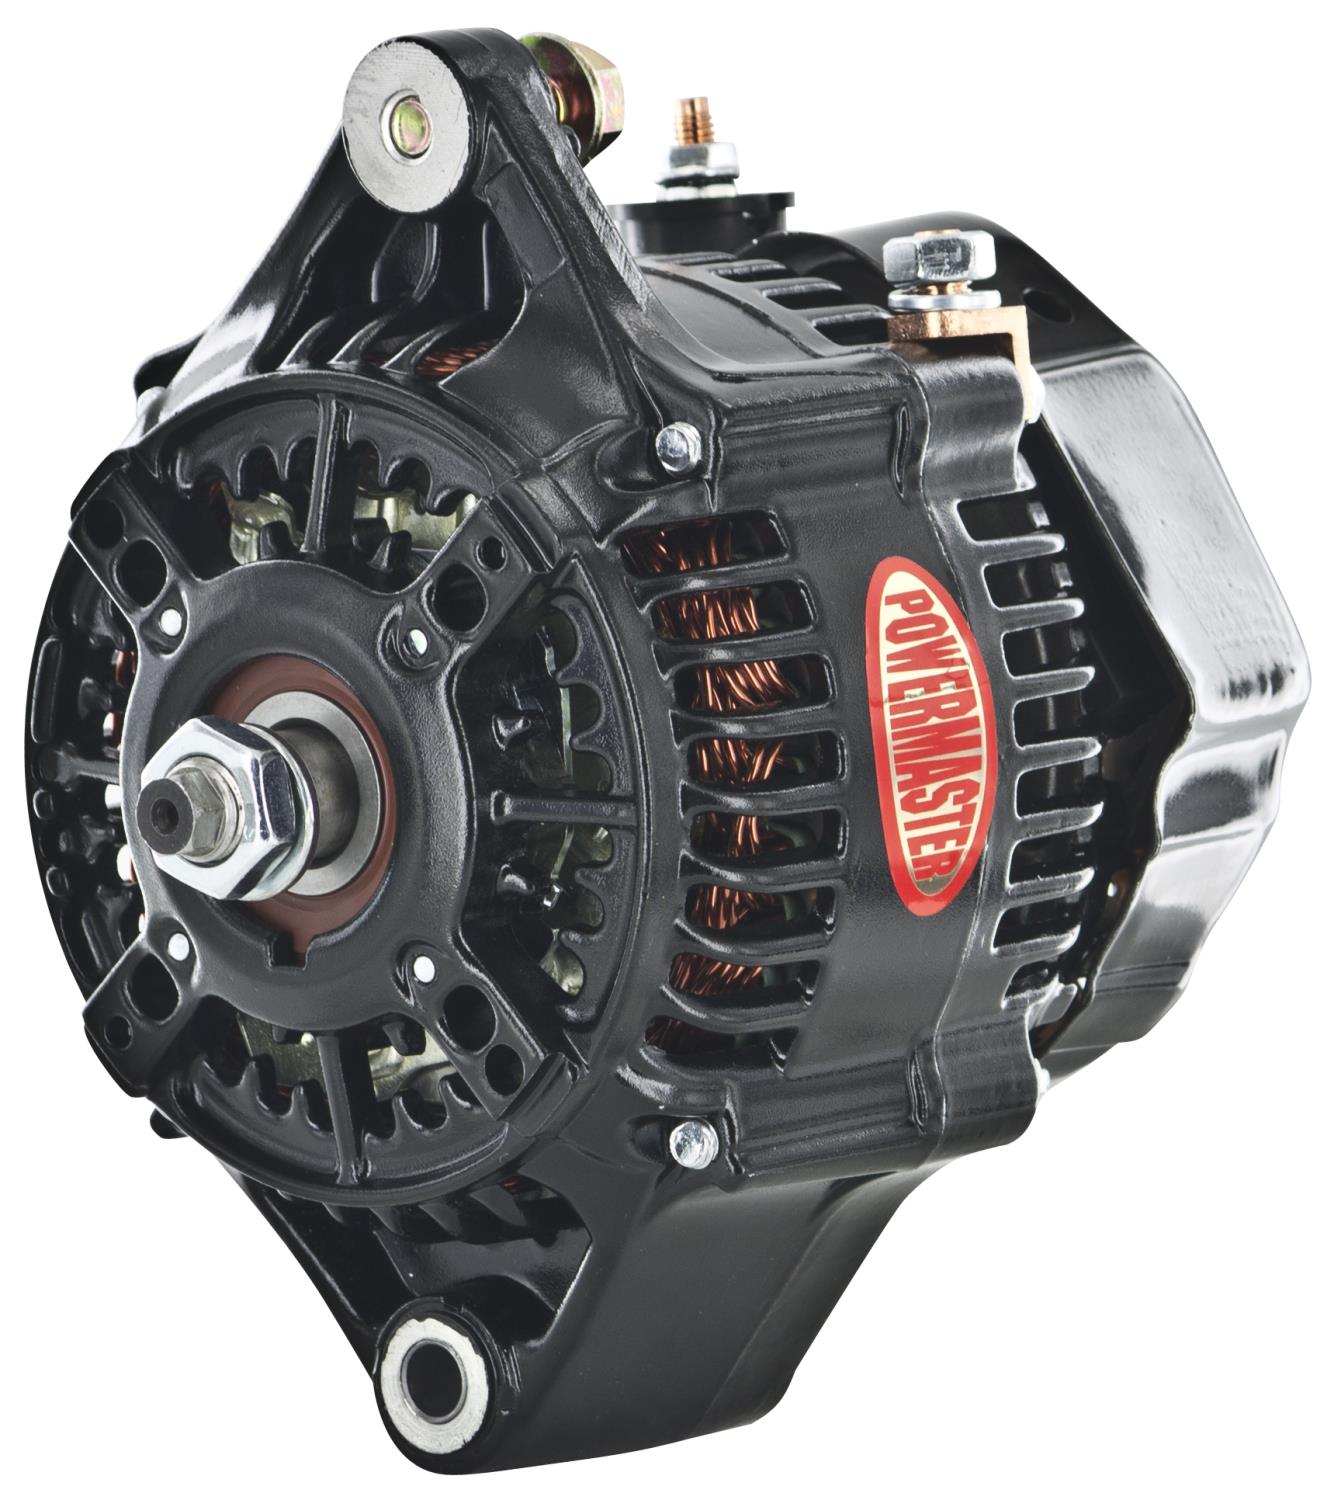 713 8142 powermaster 8142 denso style 118mm race alternator 150 amp 1 wire powermaster alternator wiring diagram at bayanpartner.co